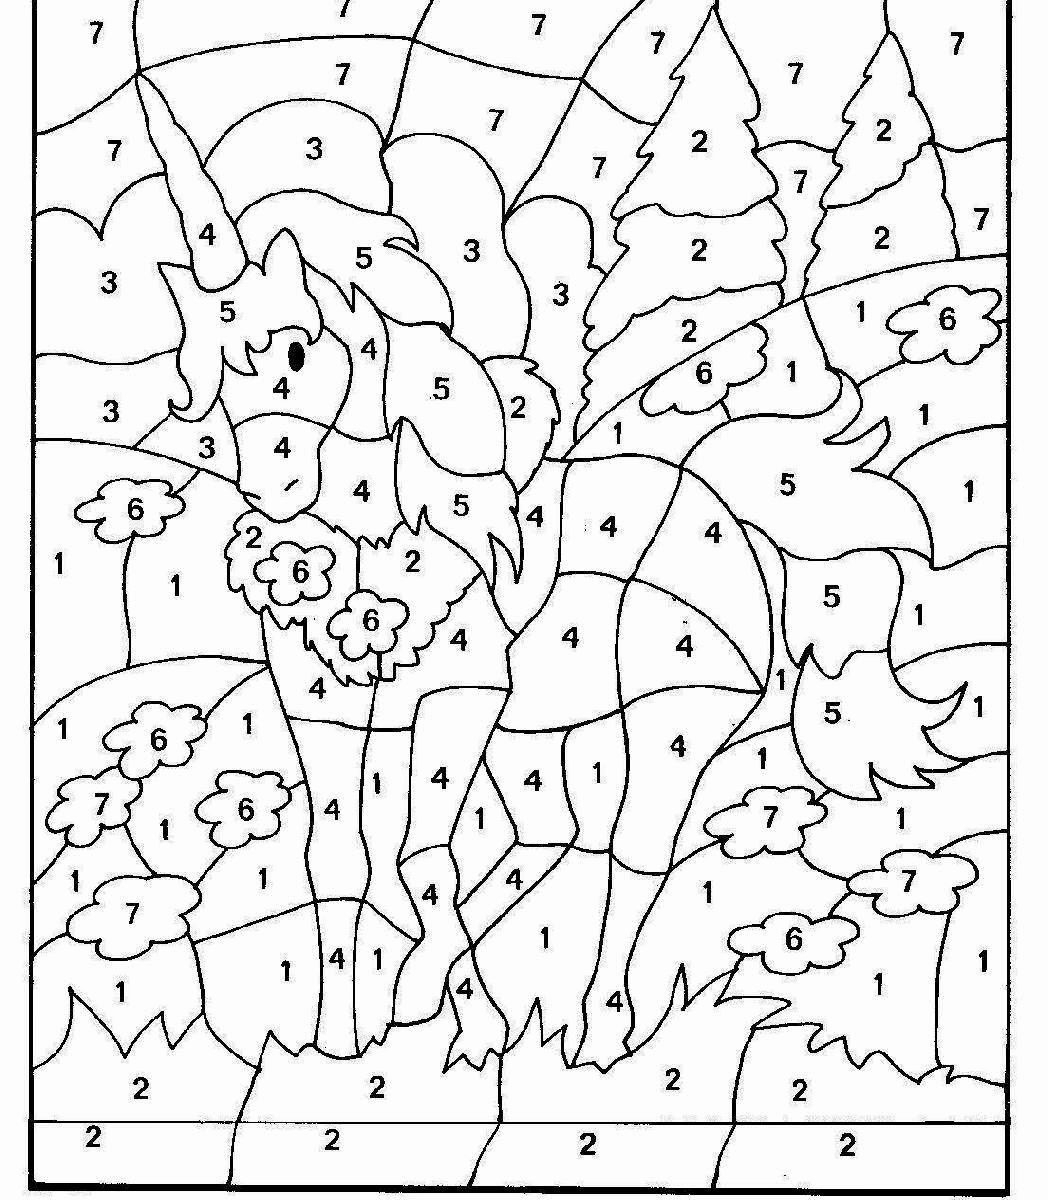 3Dsc9 Quilt Abstract Free Math Fact Coloring Pages Squared within 1St Grade Math Coloring Sheets